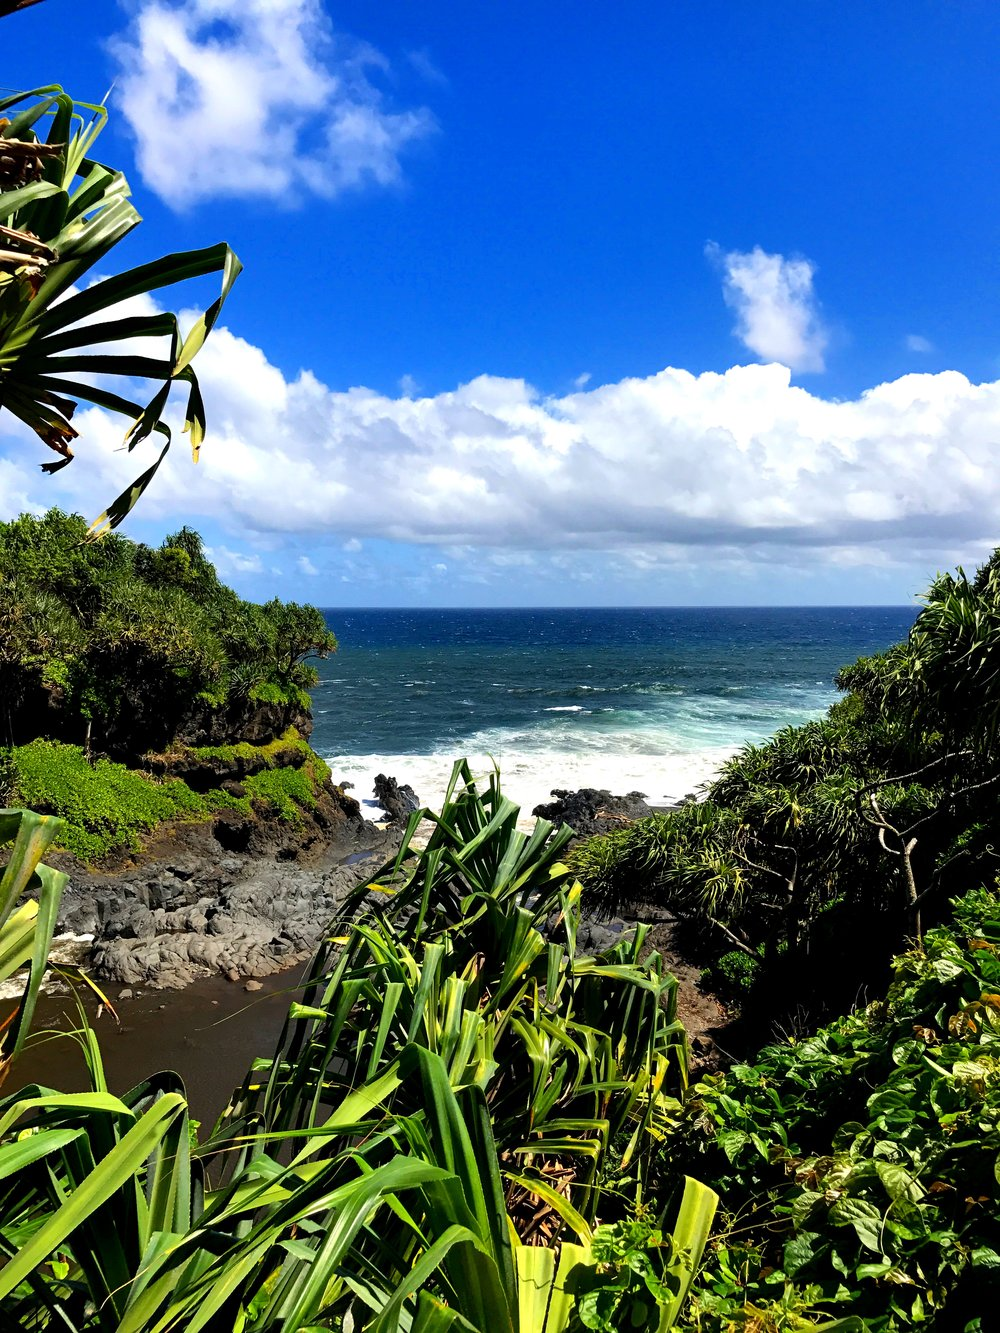 Road to Hana Maui - Wandering Jokas Travel & Ice Cream Blog